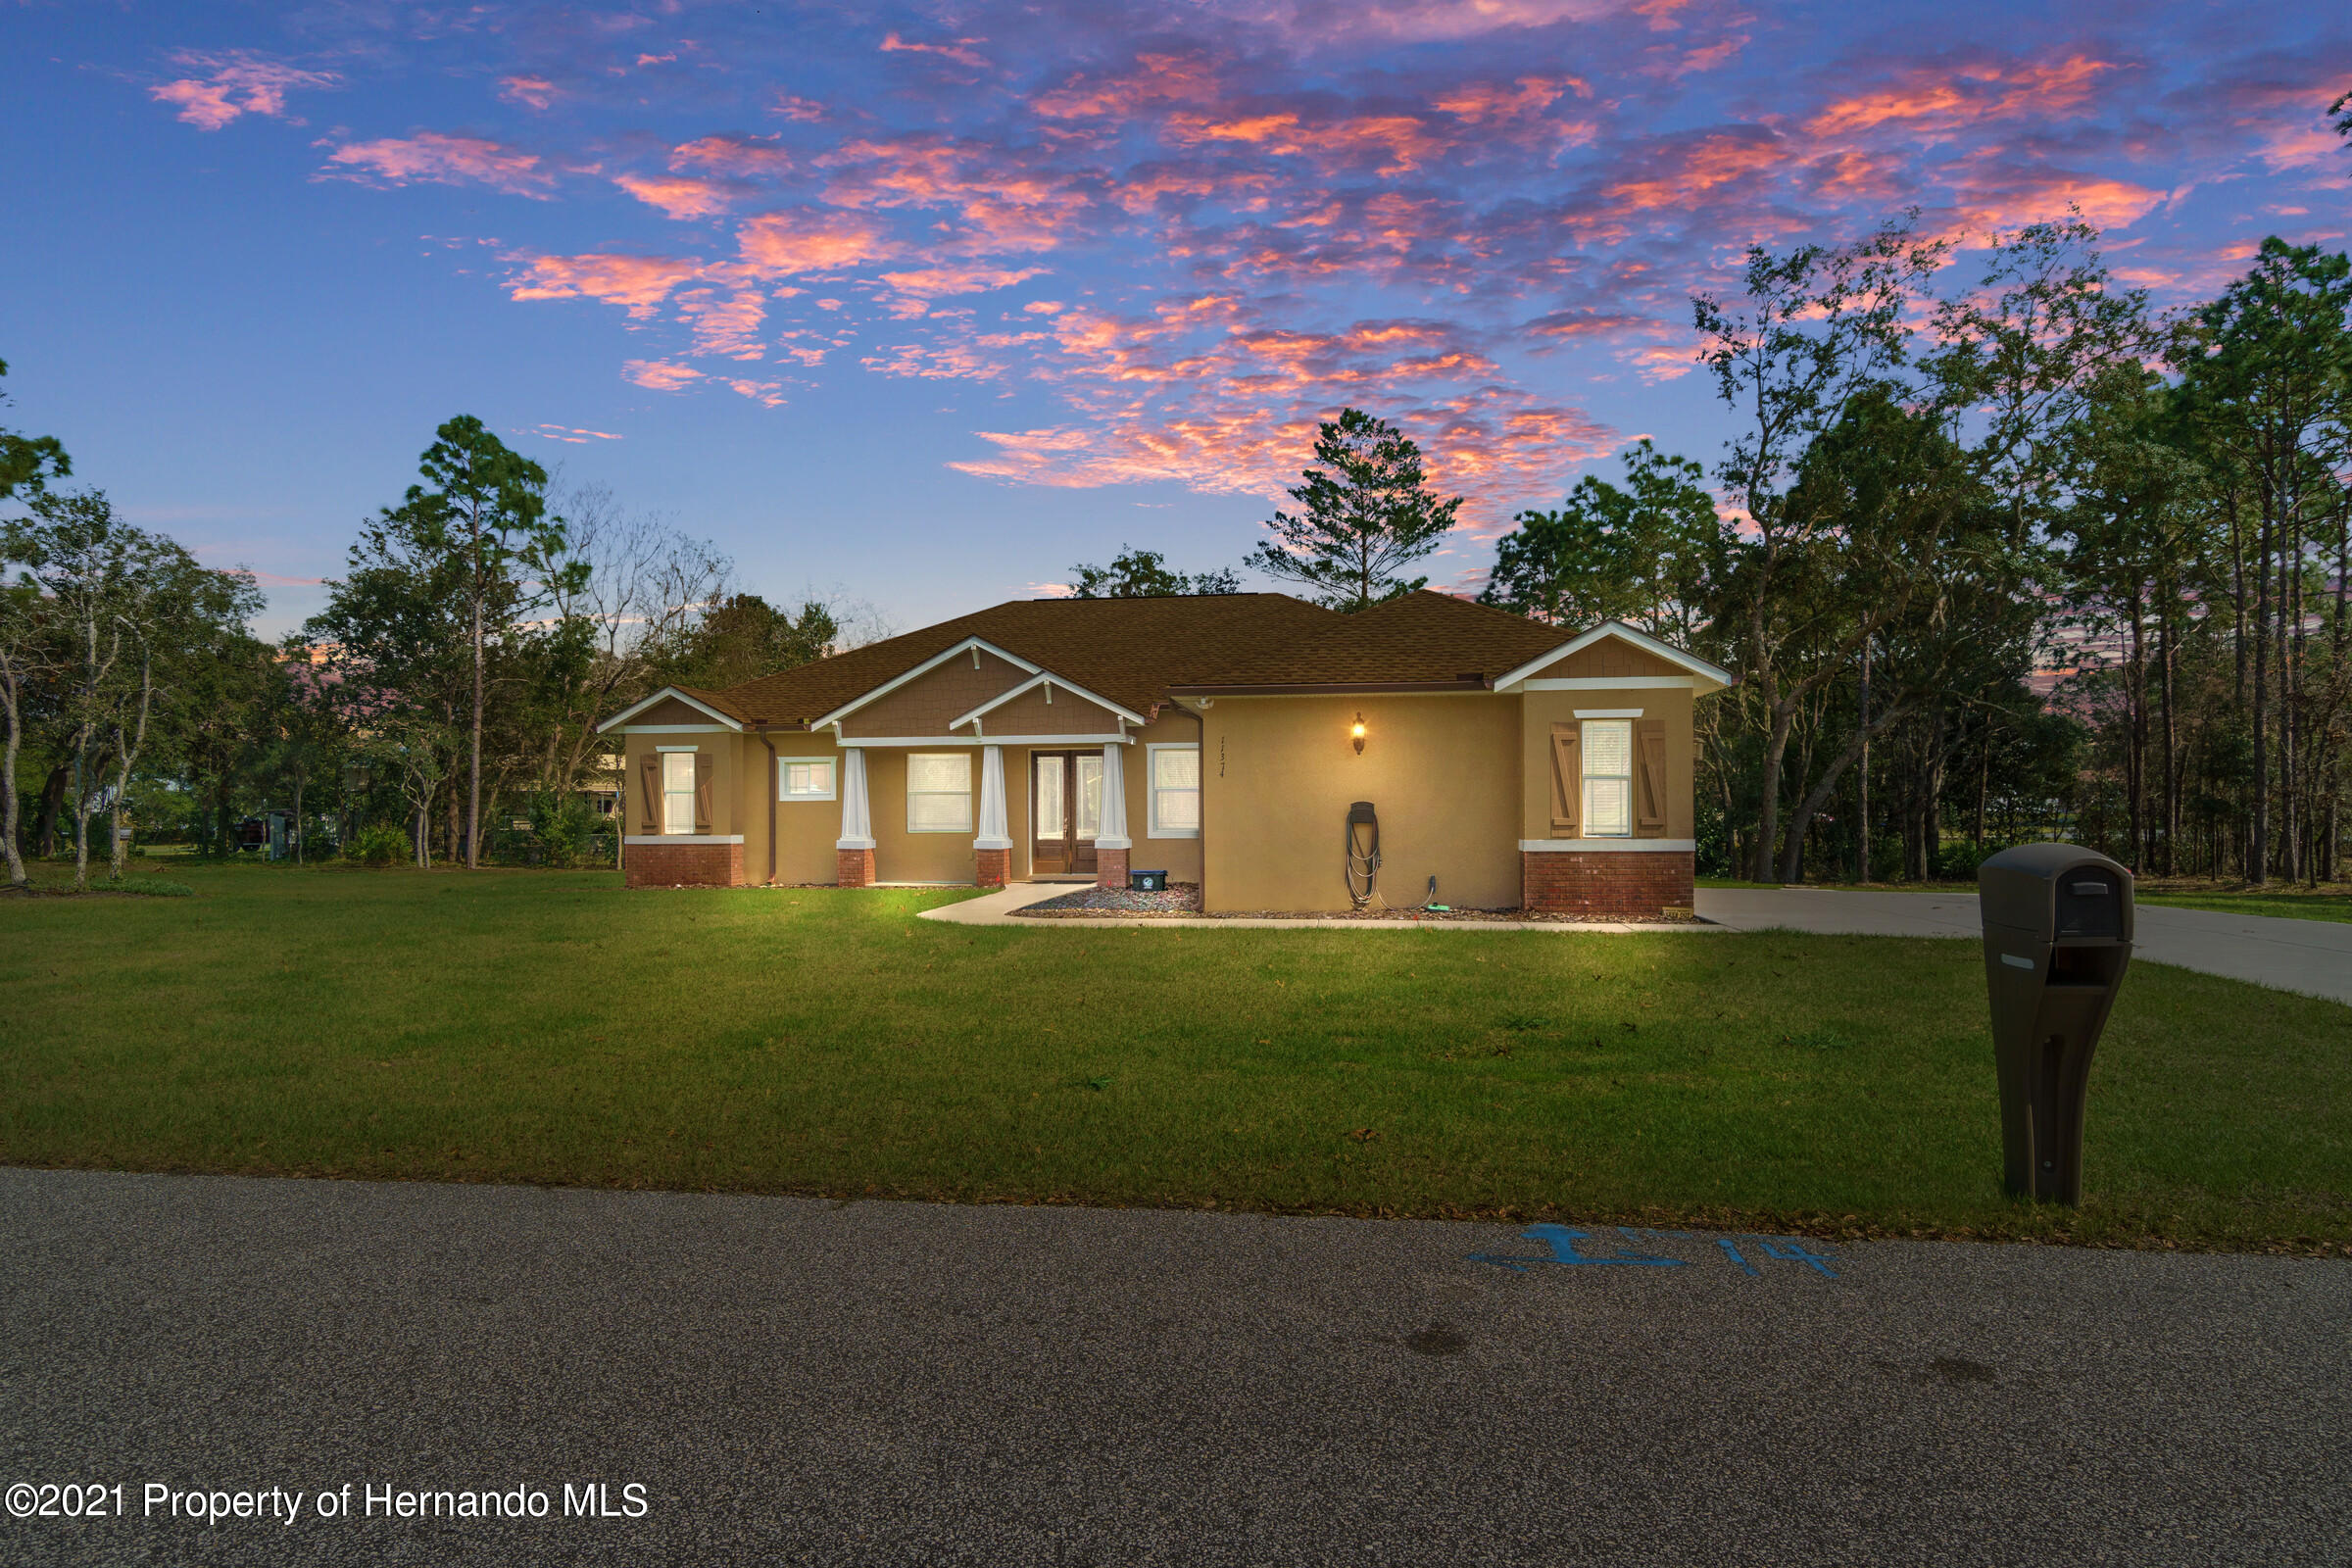 Details for 11374 Newington Avenue, Spring Hill, FL 34609